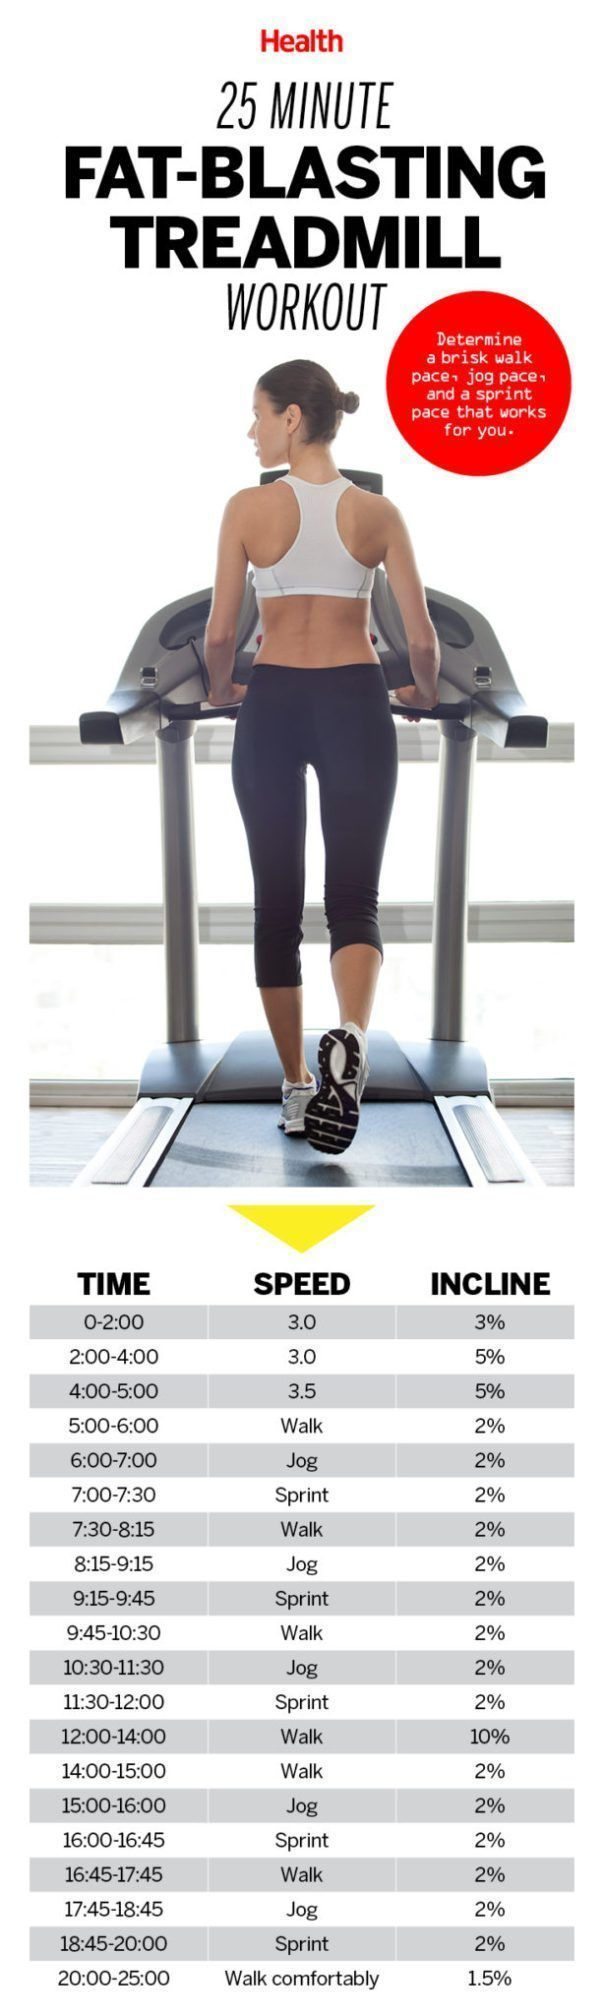 Treadmill Workouts for Weight Loss weightlossexercise  Treadmill